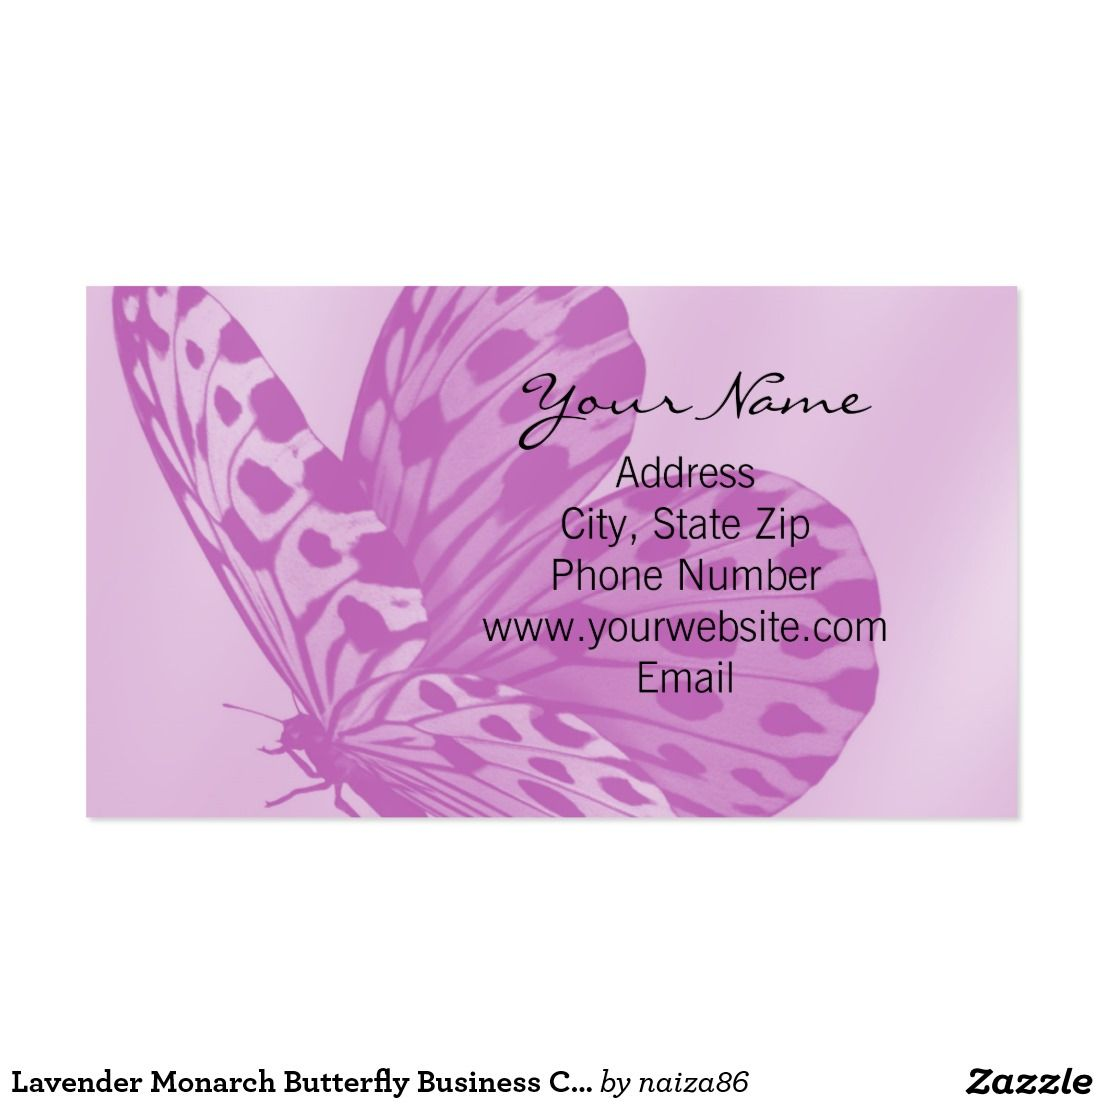 Lavender Monarch Butterfly Business Card | Business Card | Pinterest ...